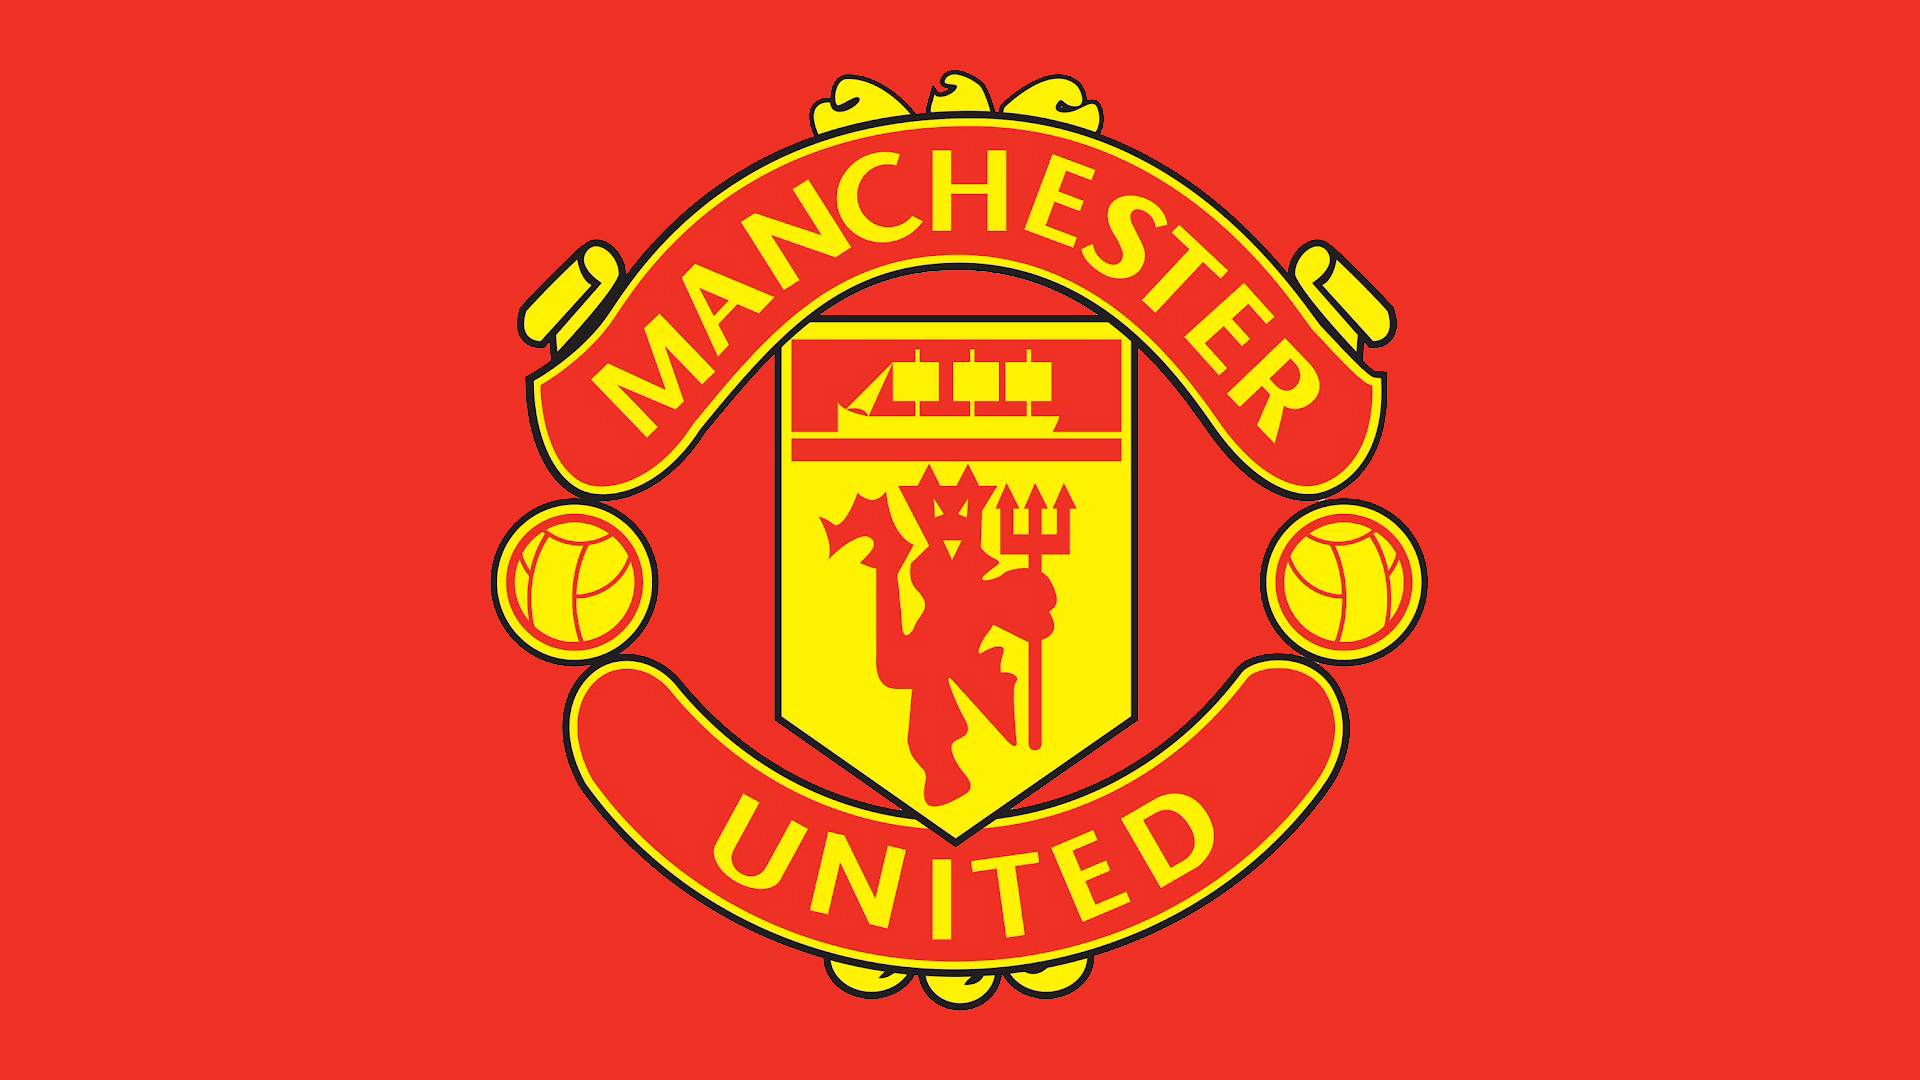 manchester united logo wallpapers man united logo png 1920x1080 download hd wallpaper wallpapertip manchester united logo wallpapers man